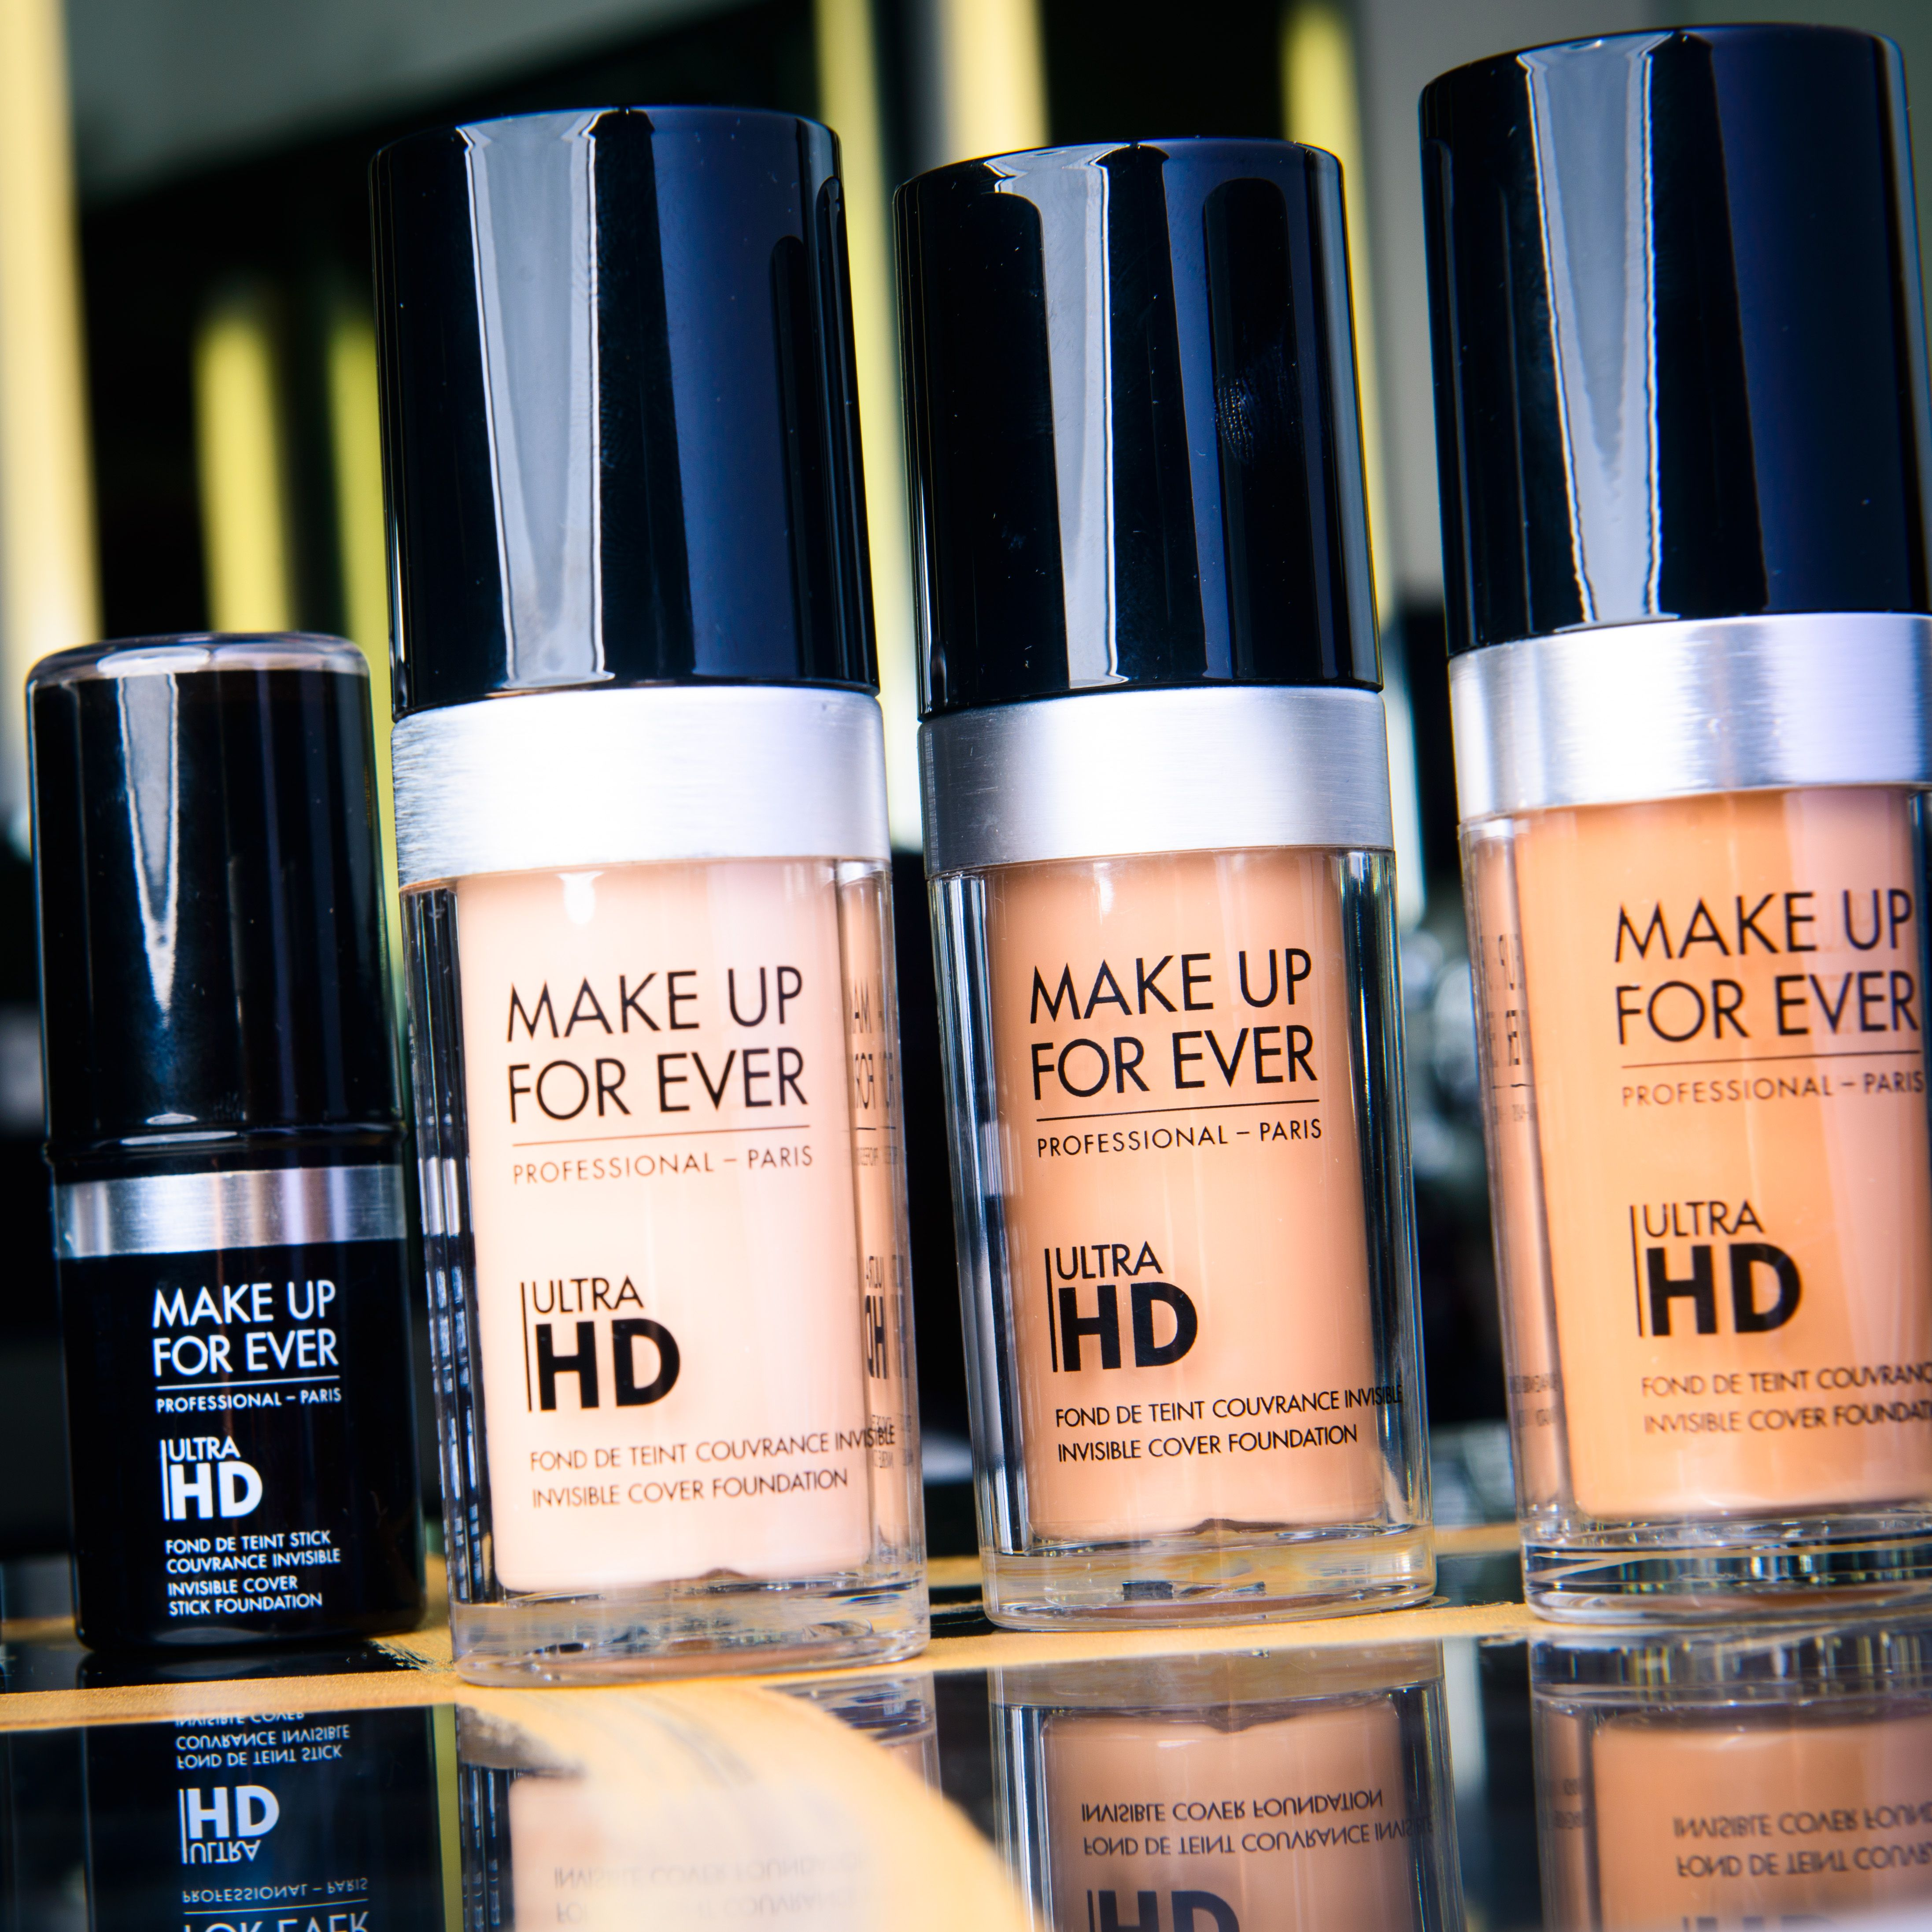 MAKE UP FOR EVER Ultra HD Foundation and Stick Foundation